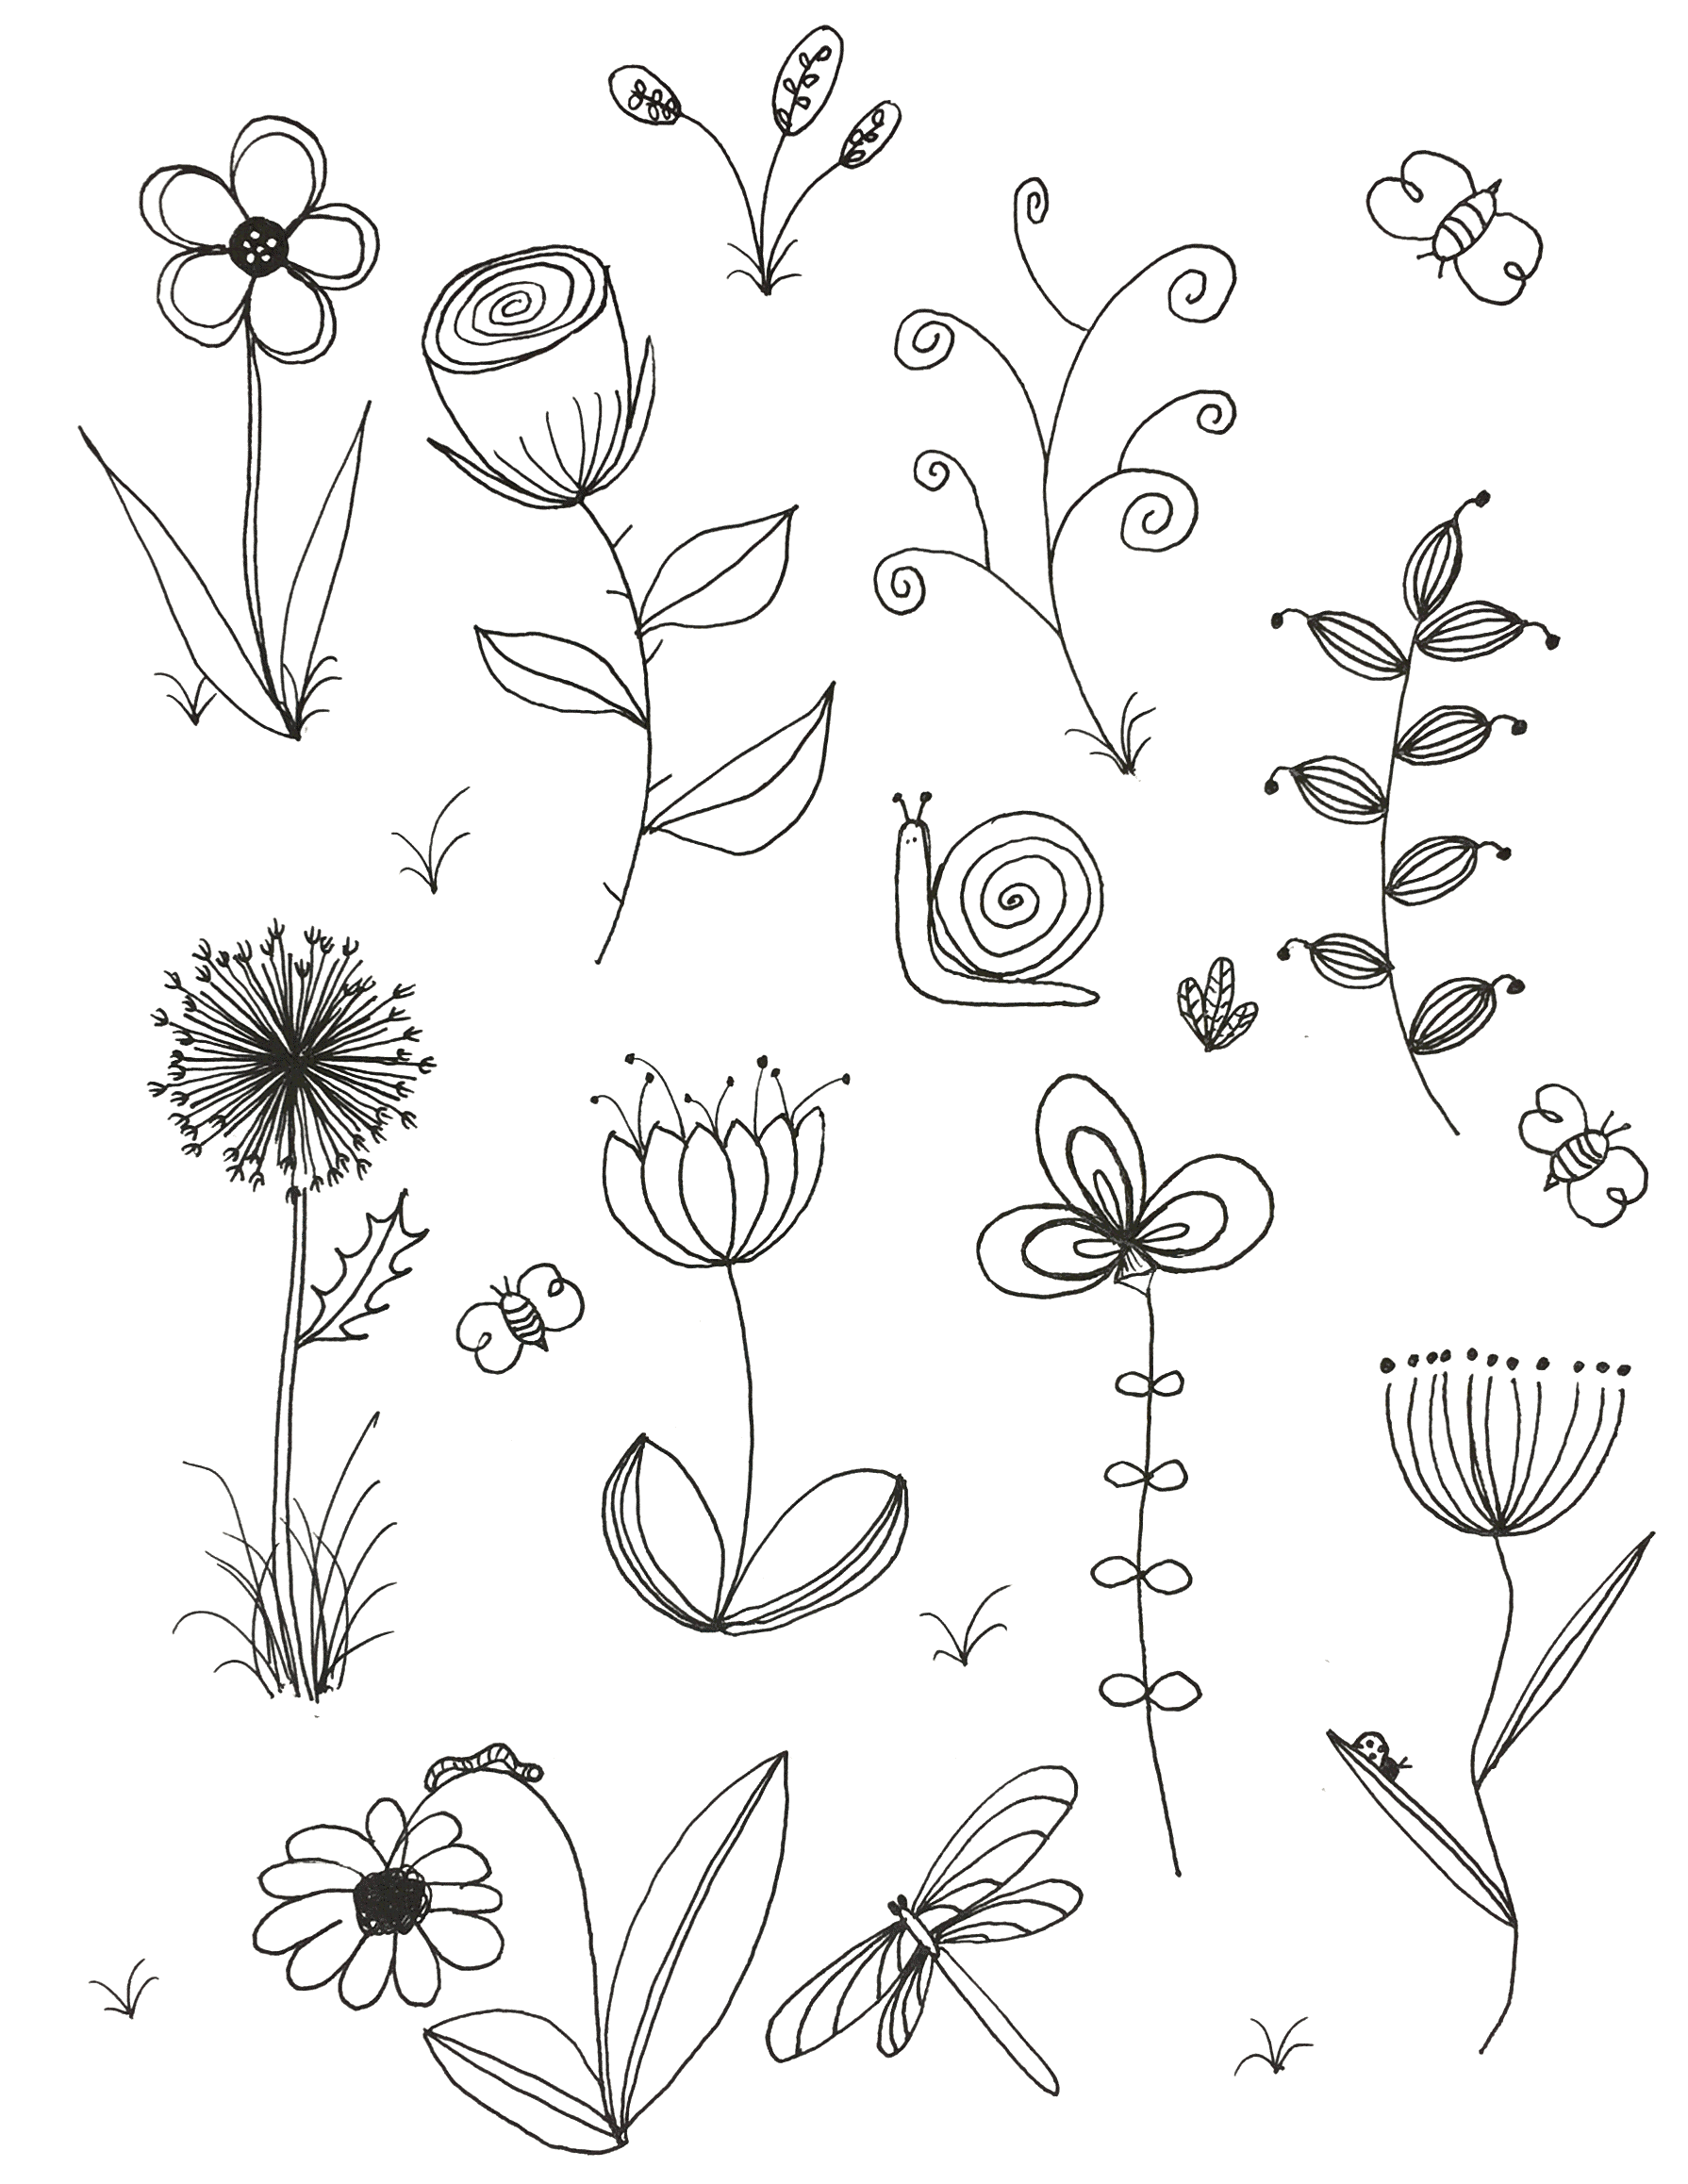 My original art, inspired by many  Doodle, flower, line drawing